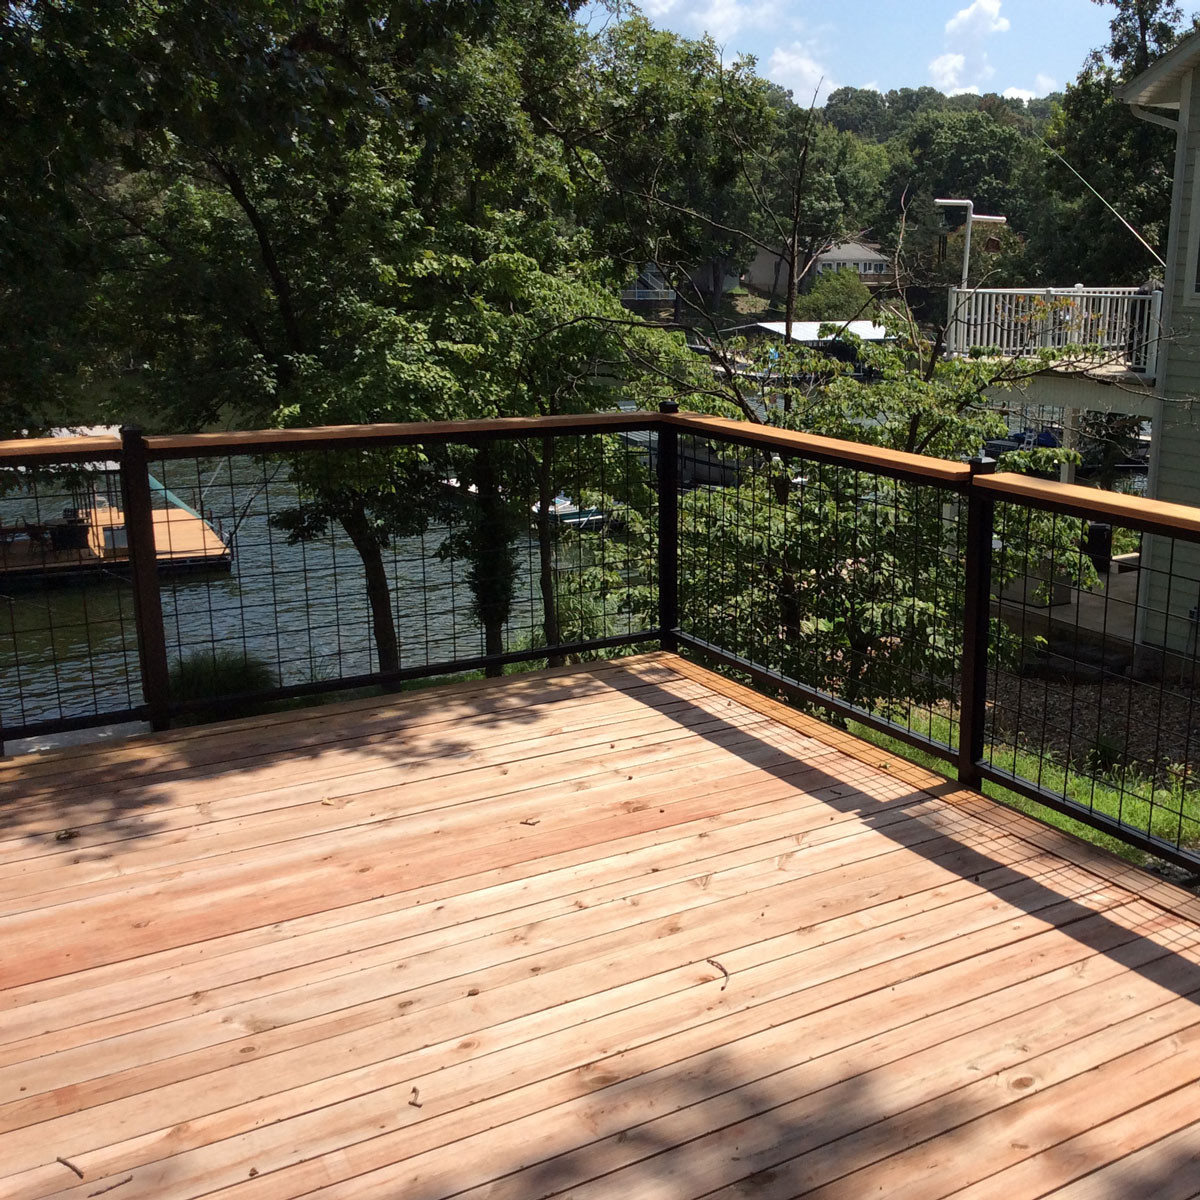 4x4 Mesh Level Rail Panels by Wild Hog Railing - DecksDirect